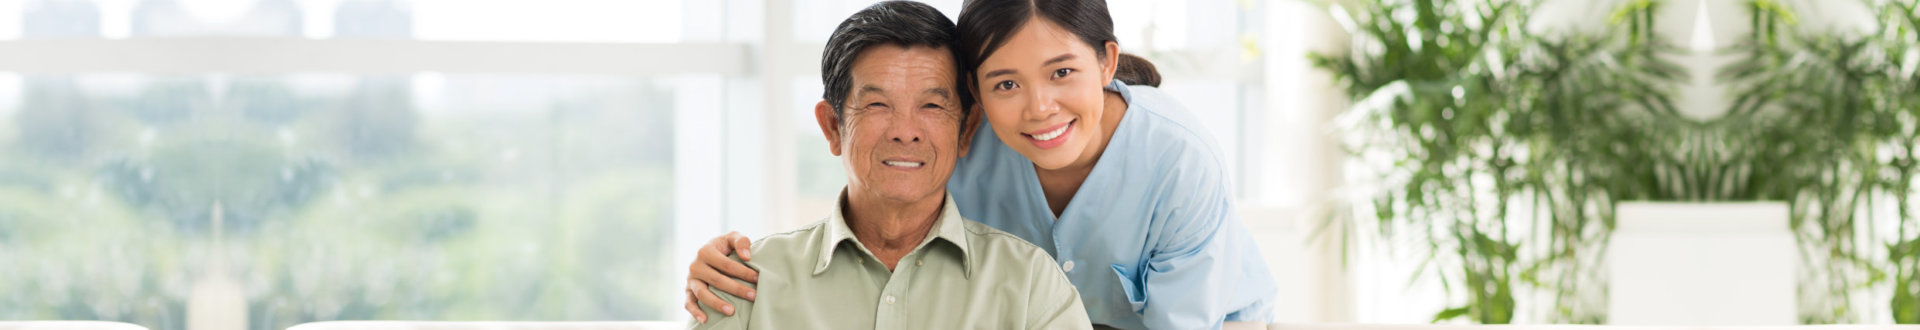 young caregiver with her senior patient